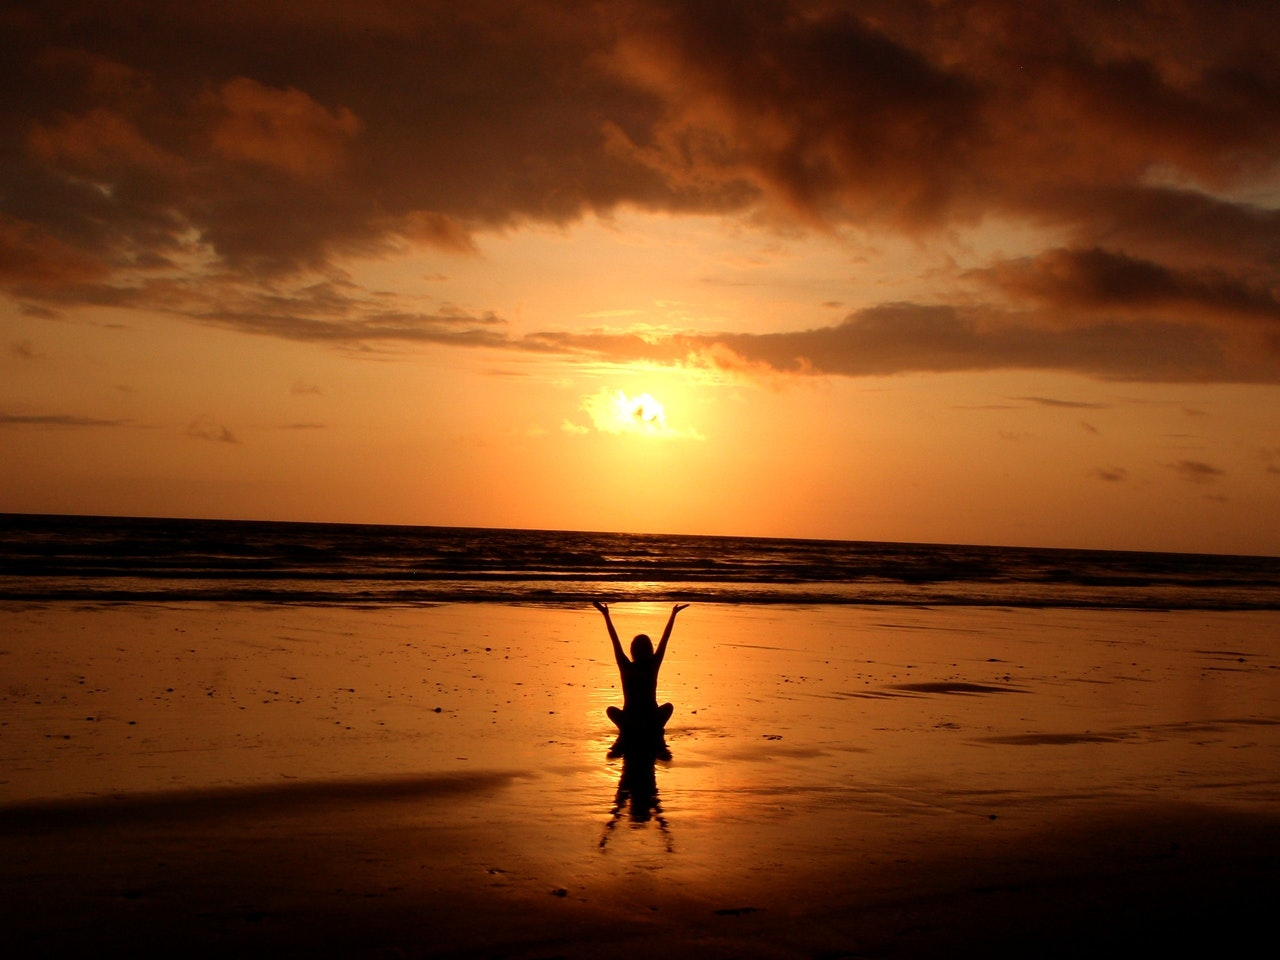 A person watching the sunset on a beach with their arms up in the air